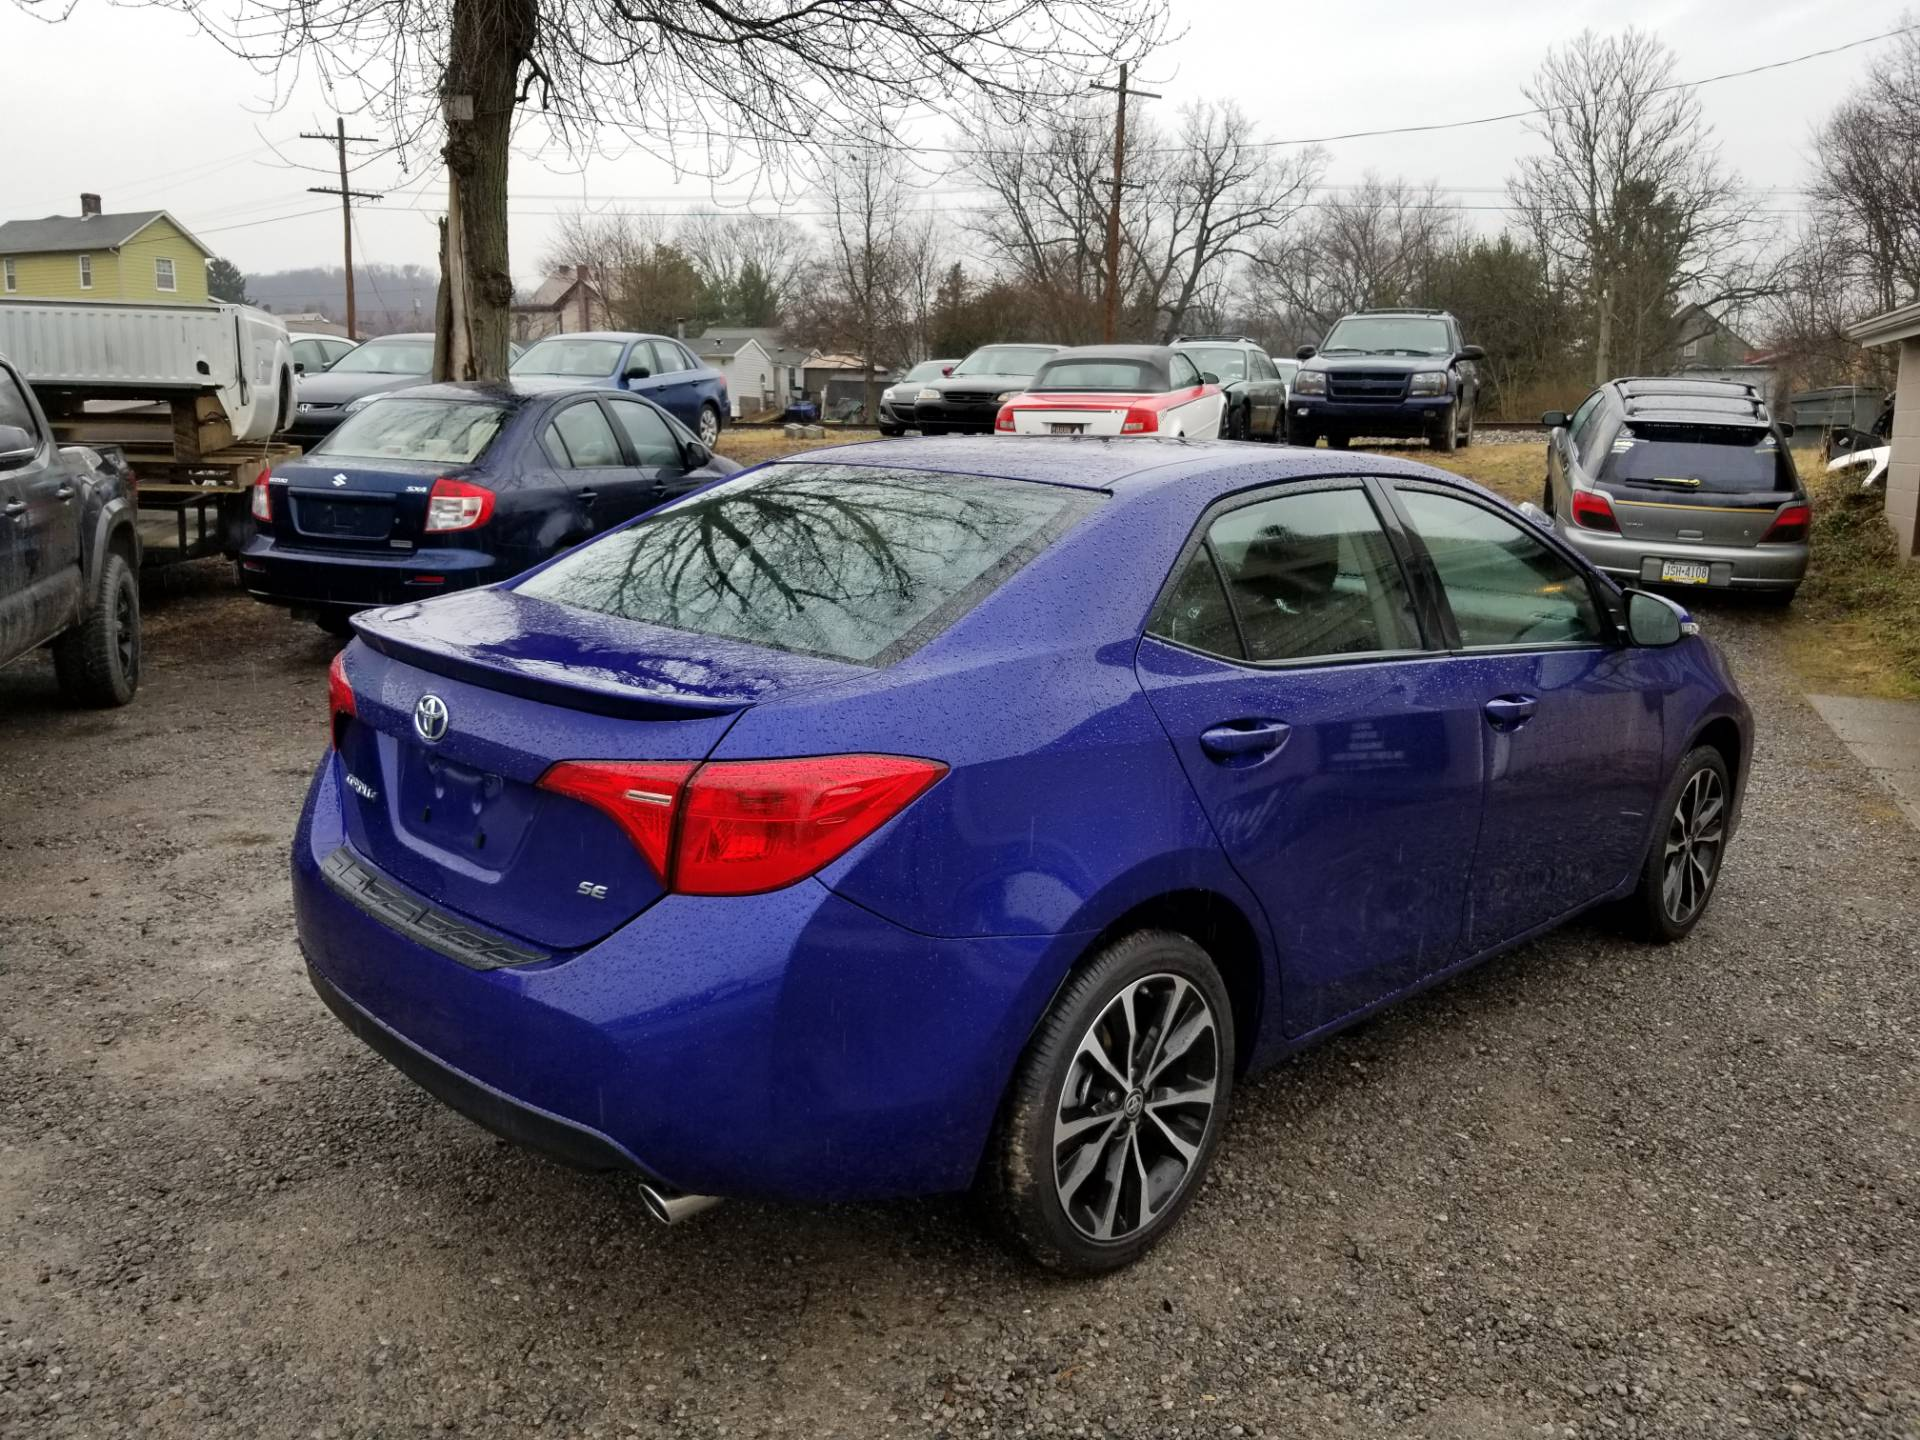 2017 Toyota Corrola SE only 400 miles in Harmony, Pennsylvania - Photo 3